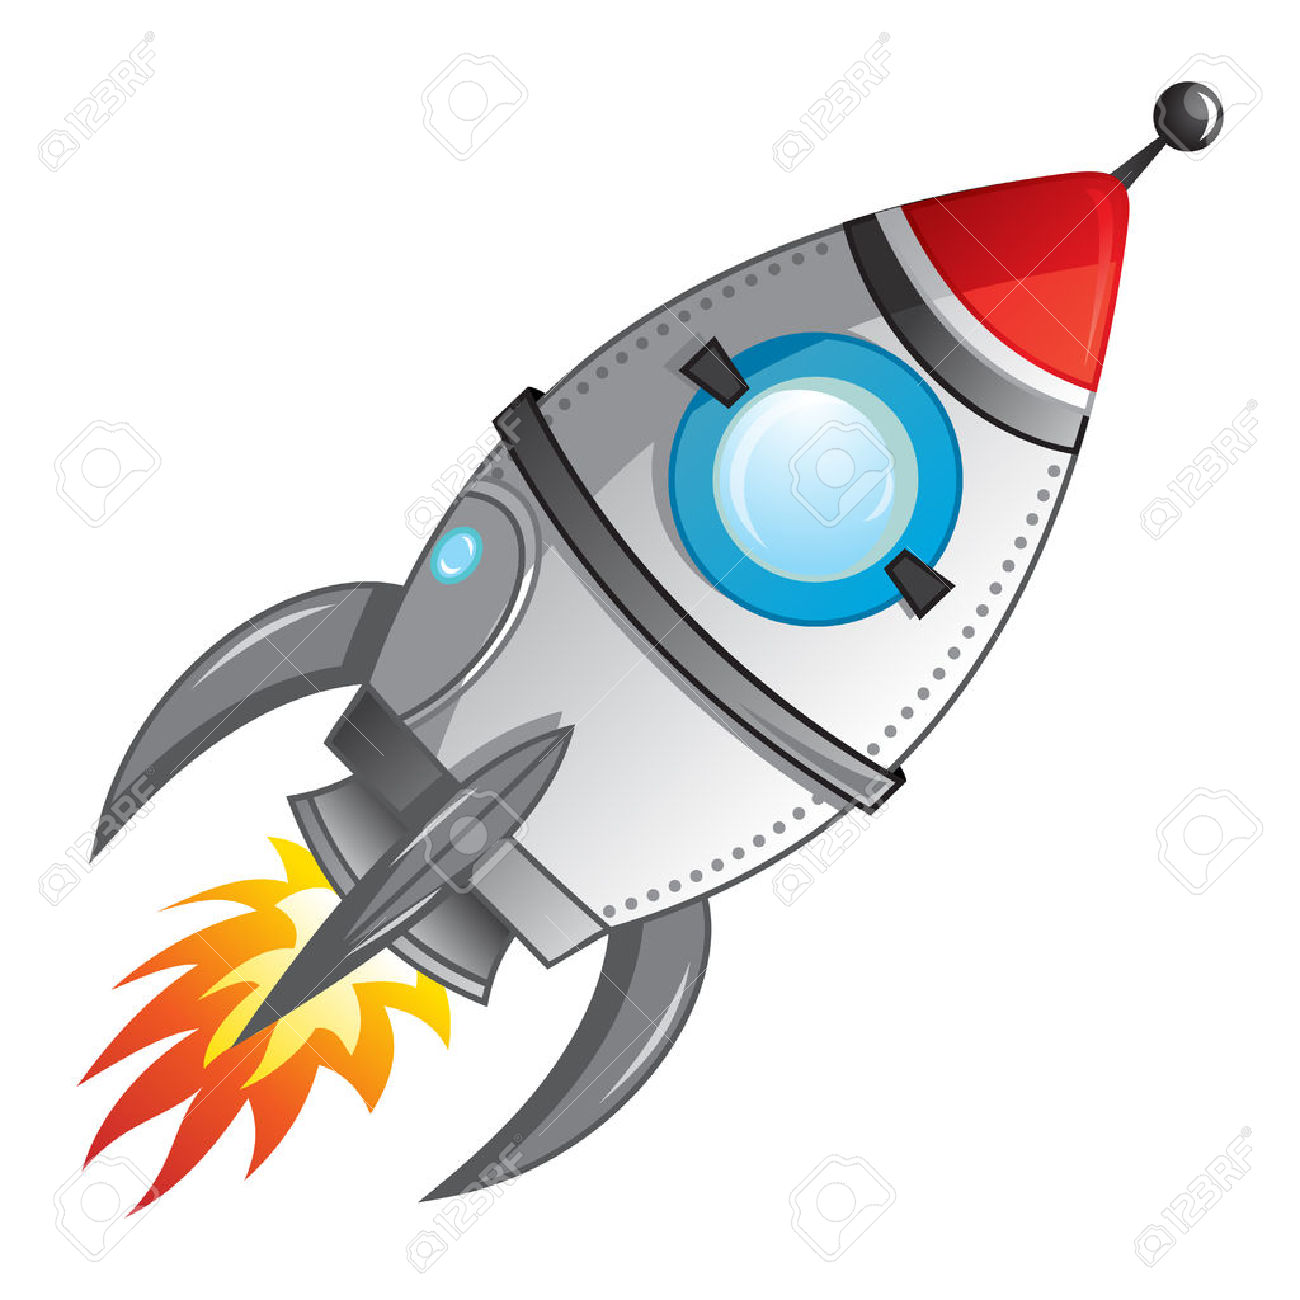 hight resolution of 1300x1300 spaceship clipart missile